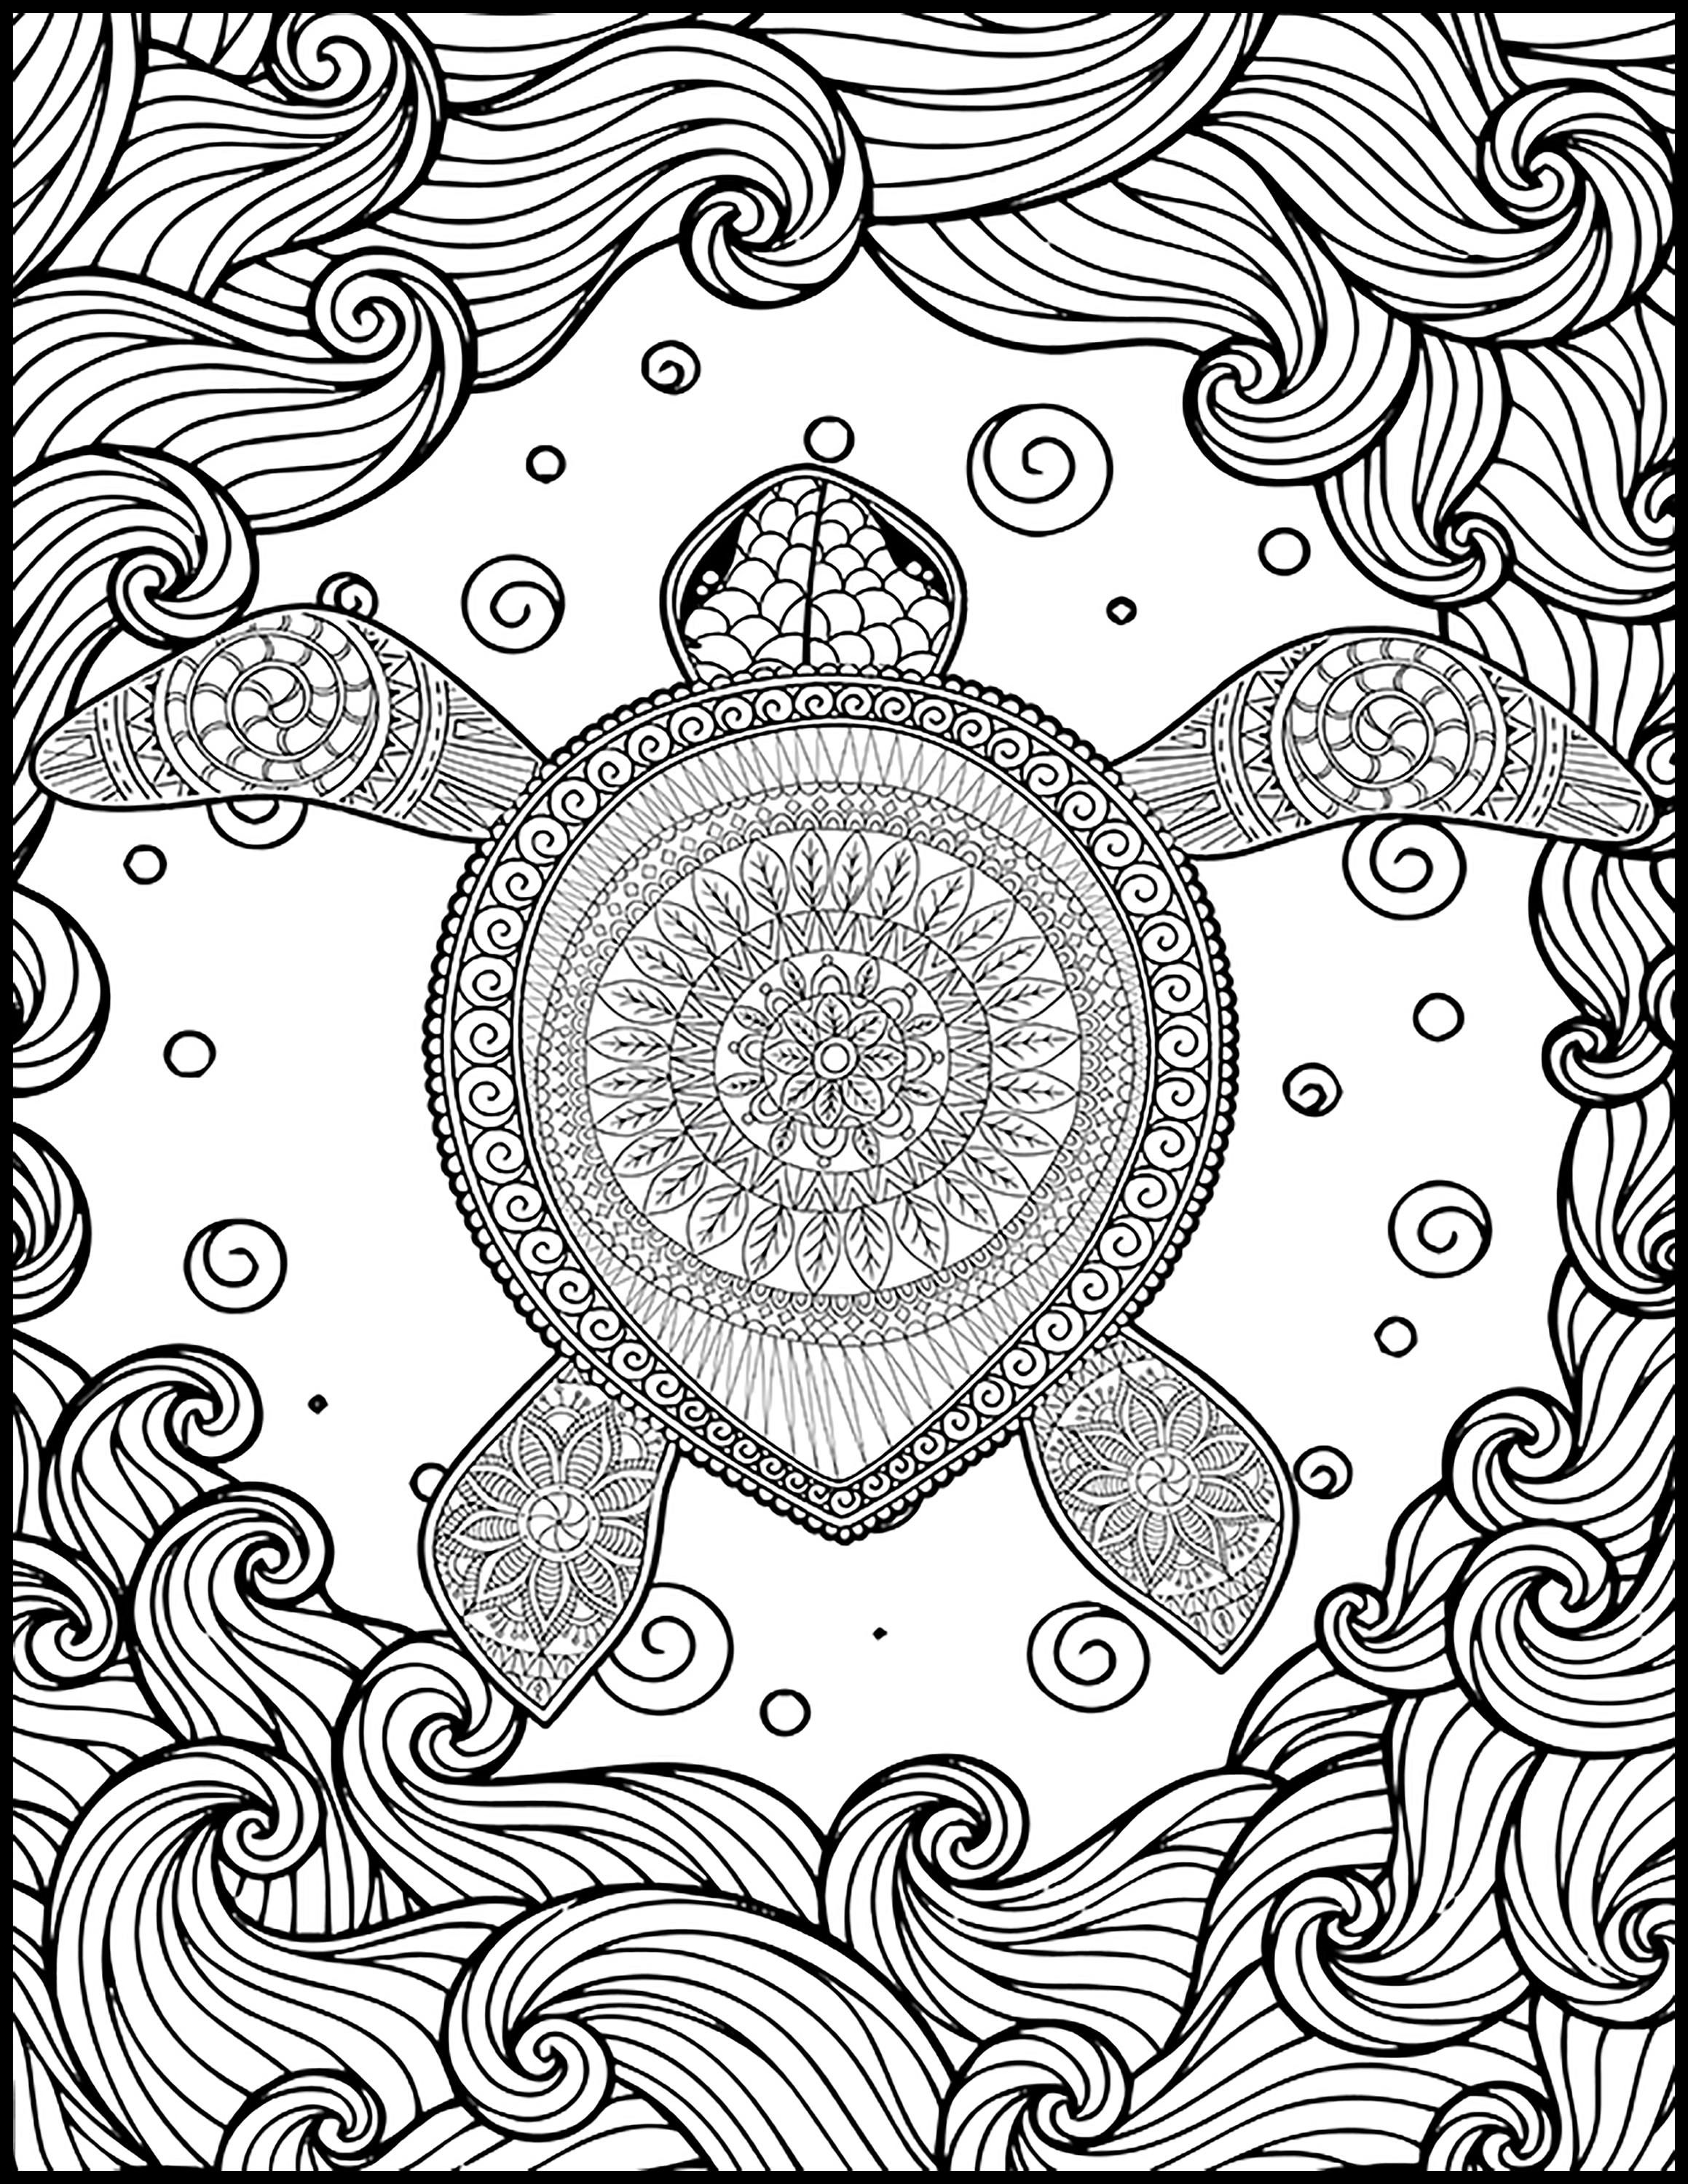 Animal Adult Coloring Page - Turtle Coloring Page for ...